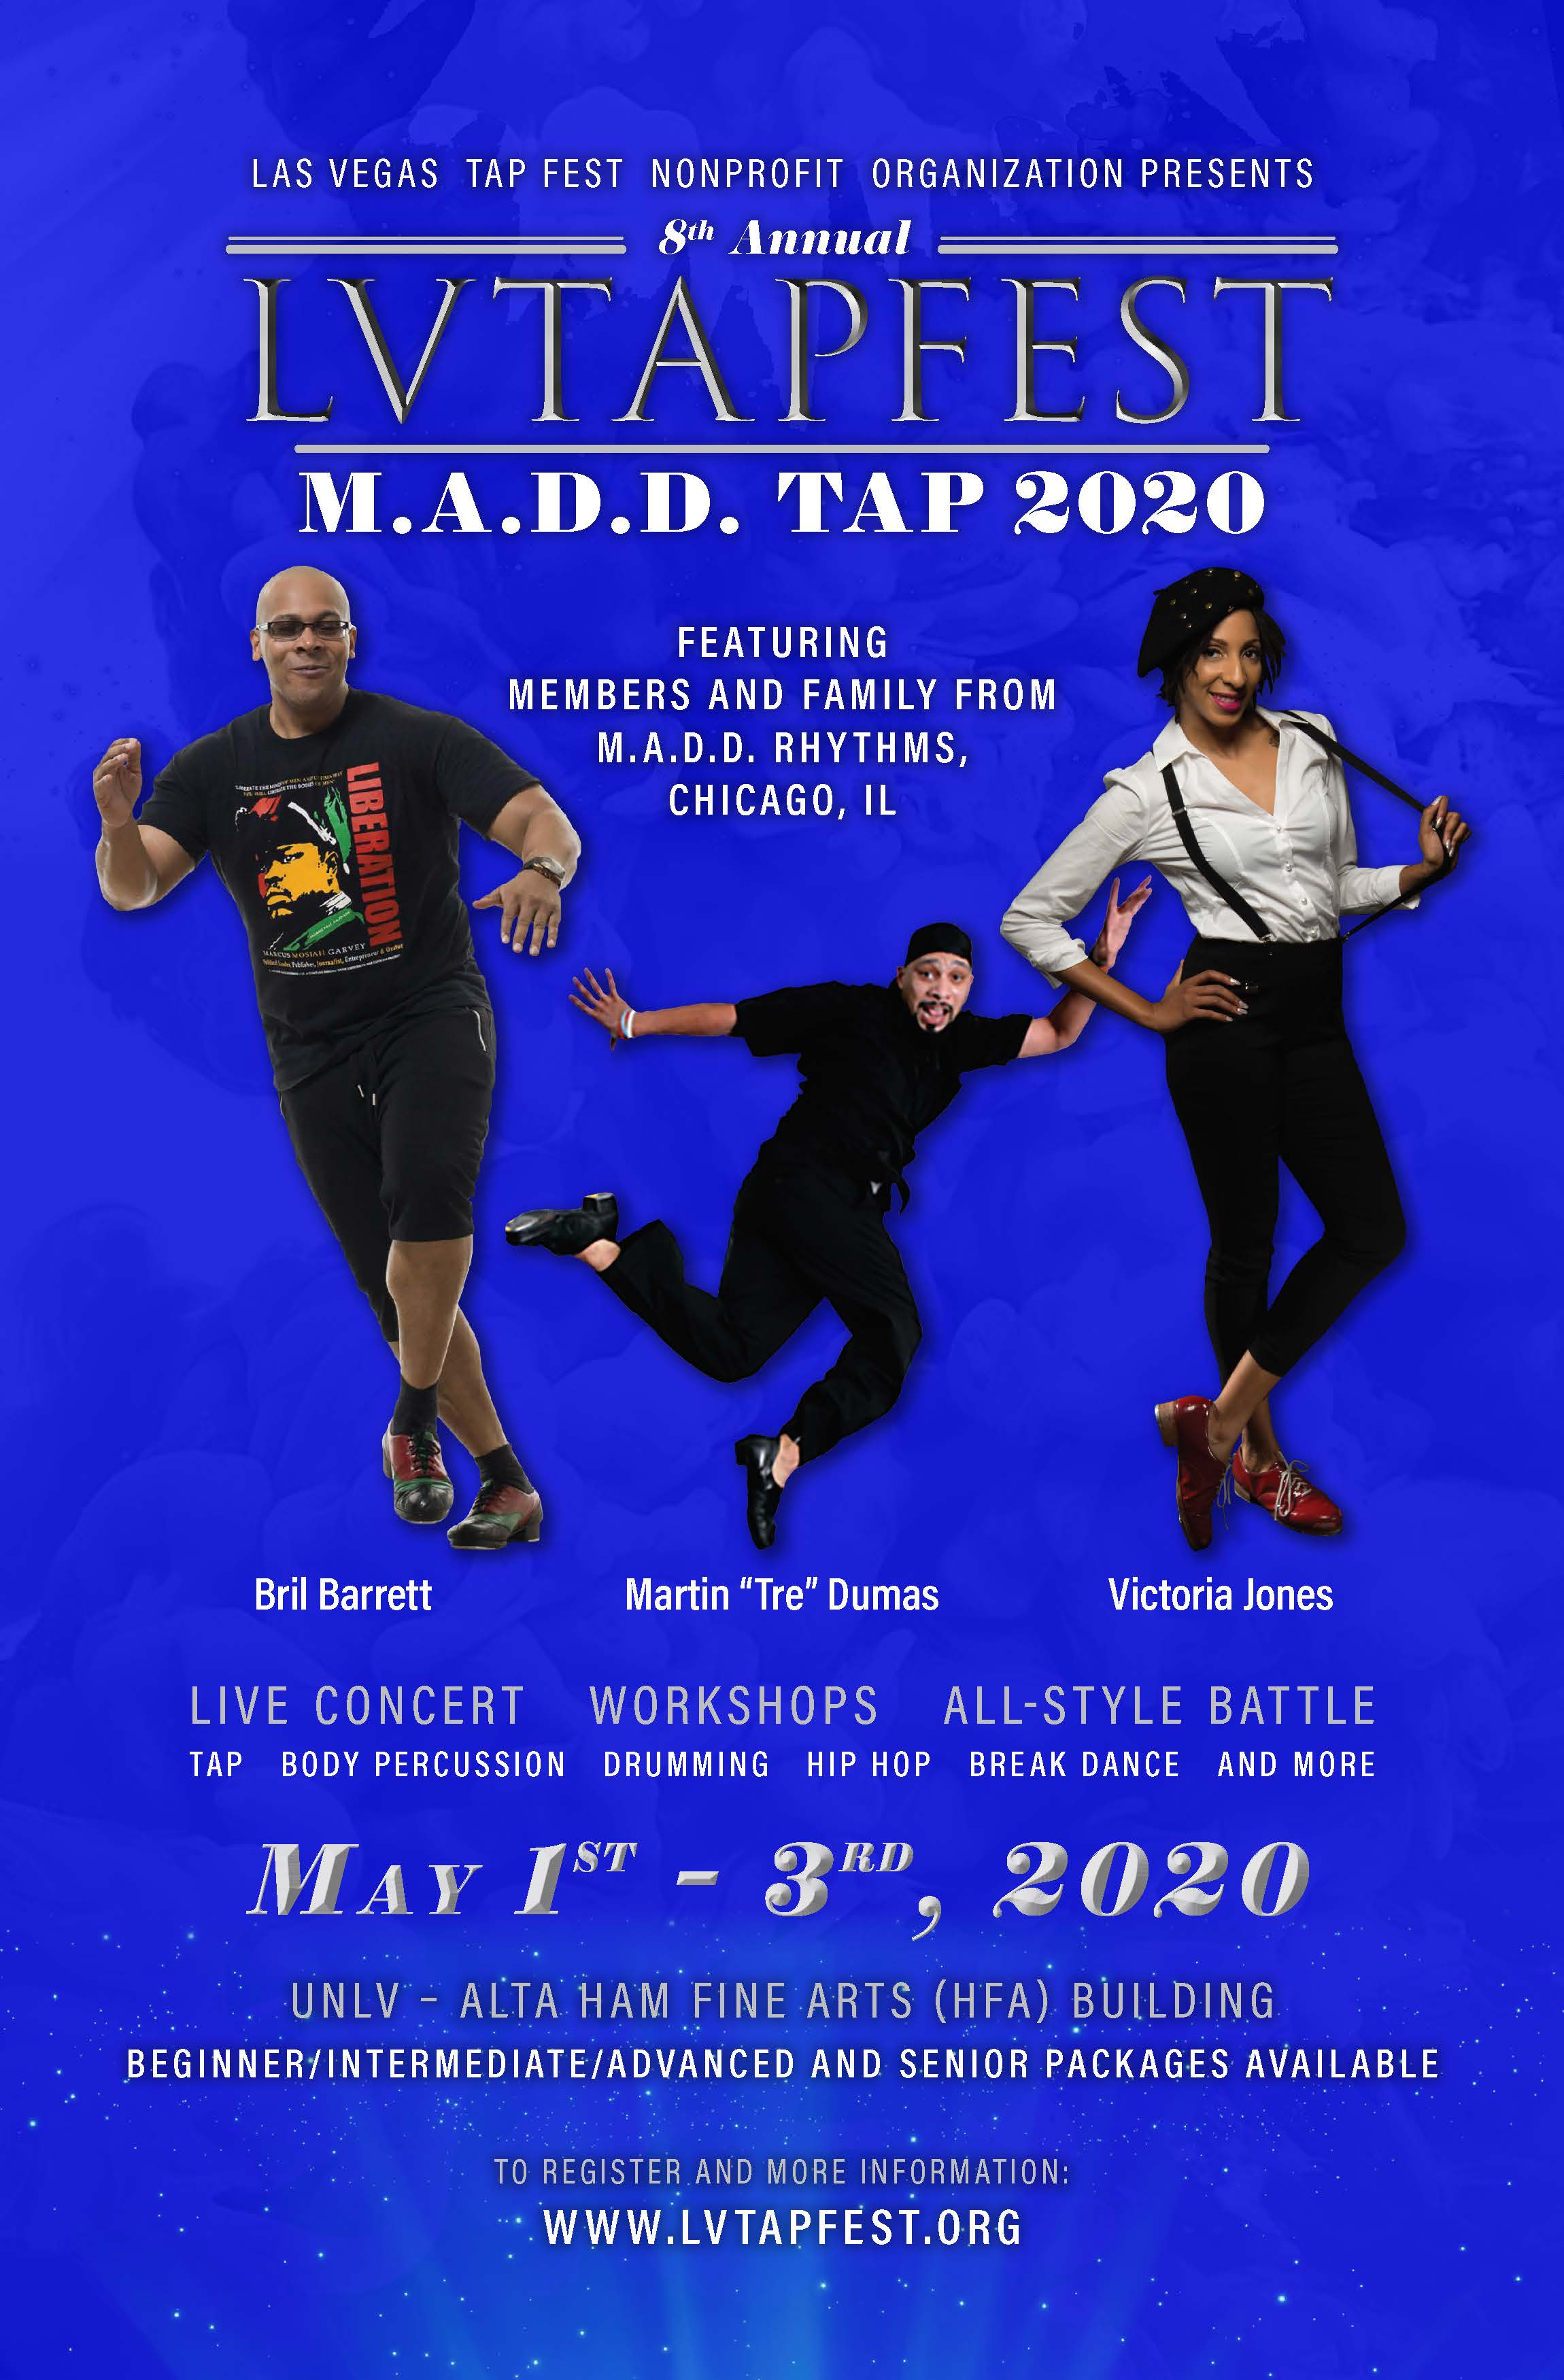 Unlv 2020 Calendar Tap Dance Festival   M.A.D.D. Tap 2020 Tickets, Fri, May 1, 2020